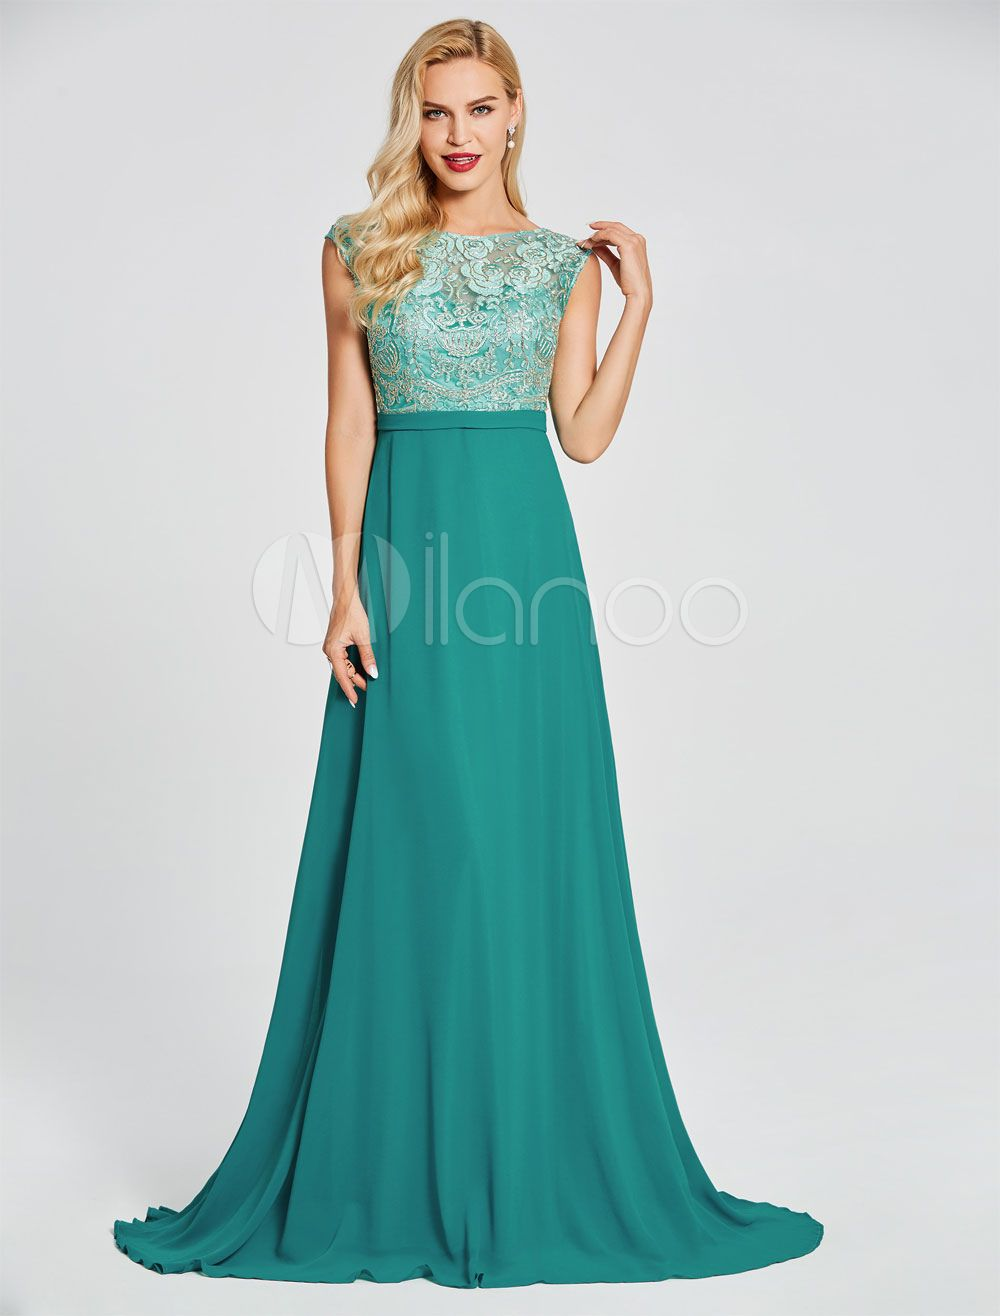 7dc551bd3f5 Prom Dresses Green Lace Chiffon Evening Gown Sleeveless V Back Wedding  Guest Dress With Train  AD